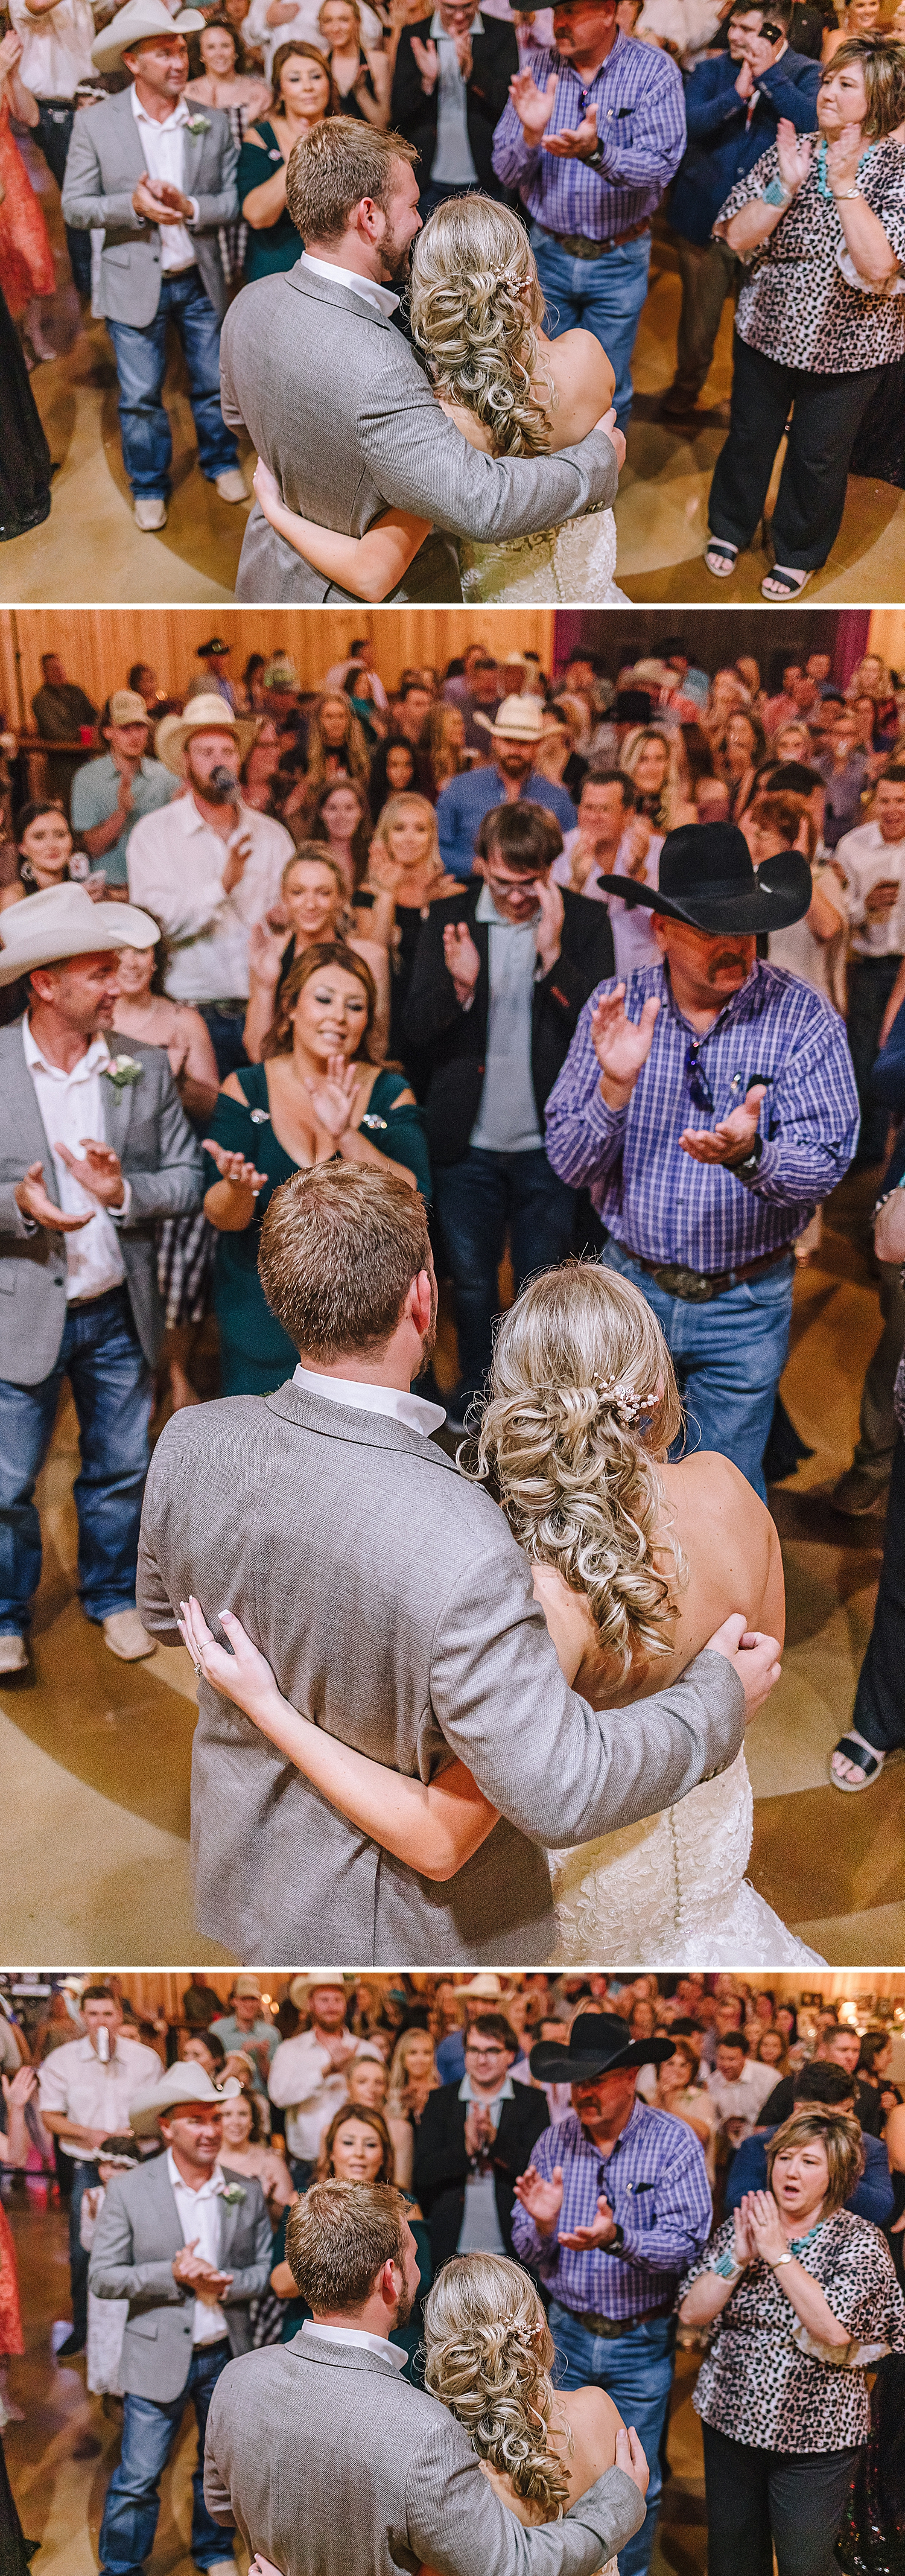 Rackler-Ranch-LaVernia-Texas-Wedding-Carly-Barton-Photography_0140.jpg